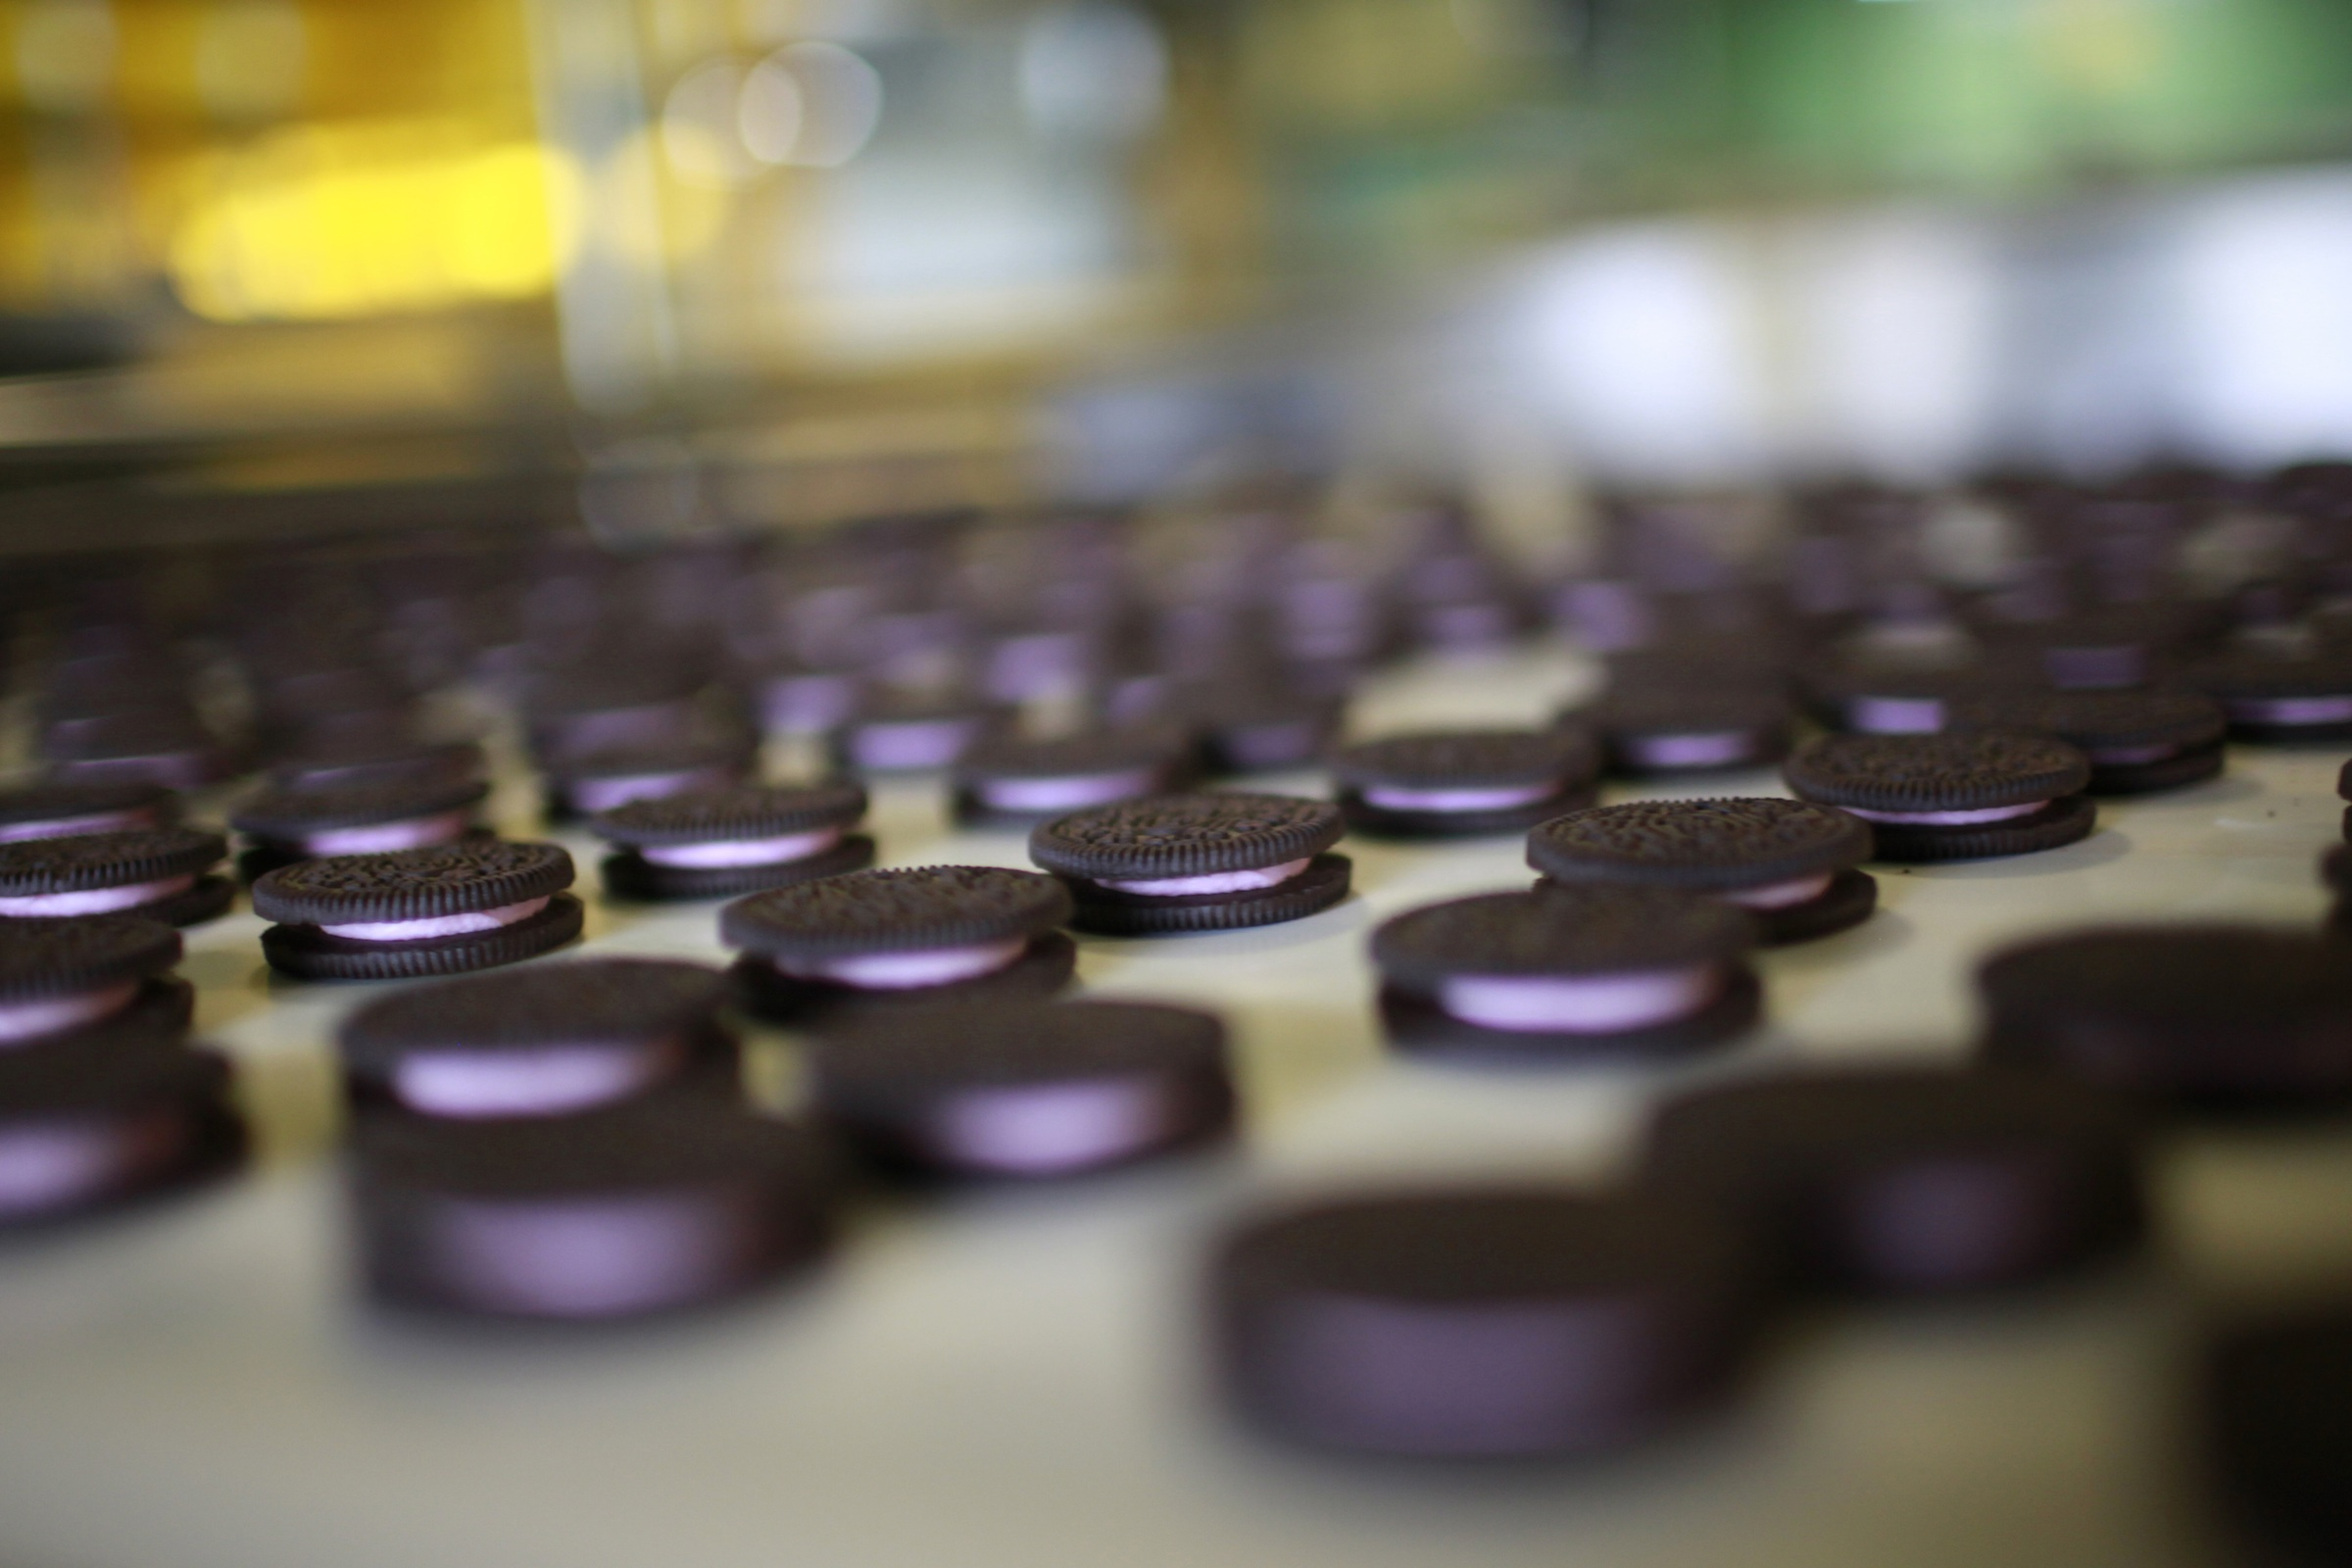 """Freshly-baked Oreo cookies pass along a conveyor belt at a Kraft Foods' factory in Suzhou, Jiangsu province May 30, 2012. Investment may be powering the Chinese economy but experiments like Oreo's gum cookie, a cookie with a glob of gum sandwiched neatly between a pair of Oreo's iconic dark chocolate biscuits instead of the creamy white """"stuff"""", which for better or worse never made it to store shelves, are a reminder that consumption is rising sharply. That means it is vital for food companies to get the right products into the market, particularly with demand dimming in the United States and Europe. Picture taken May 30, 2012. To match story CHINA-LOCALISATION/OREOS REUTERS/Aly Song (CHINA - Tags: BUSINESS FOOD SOCIETY) - RTR337WF"""